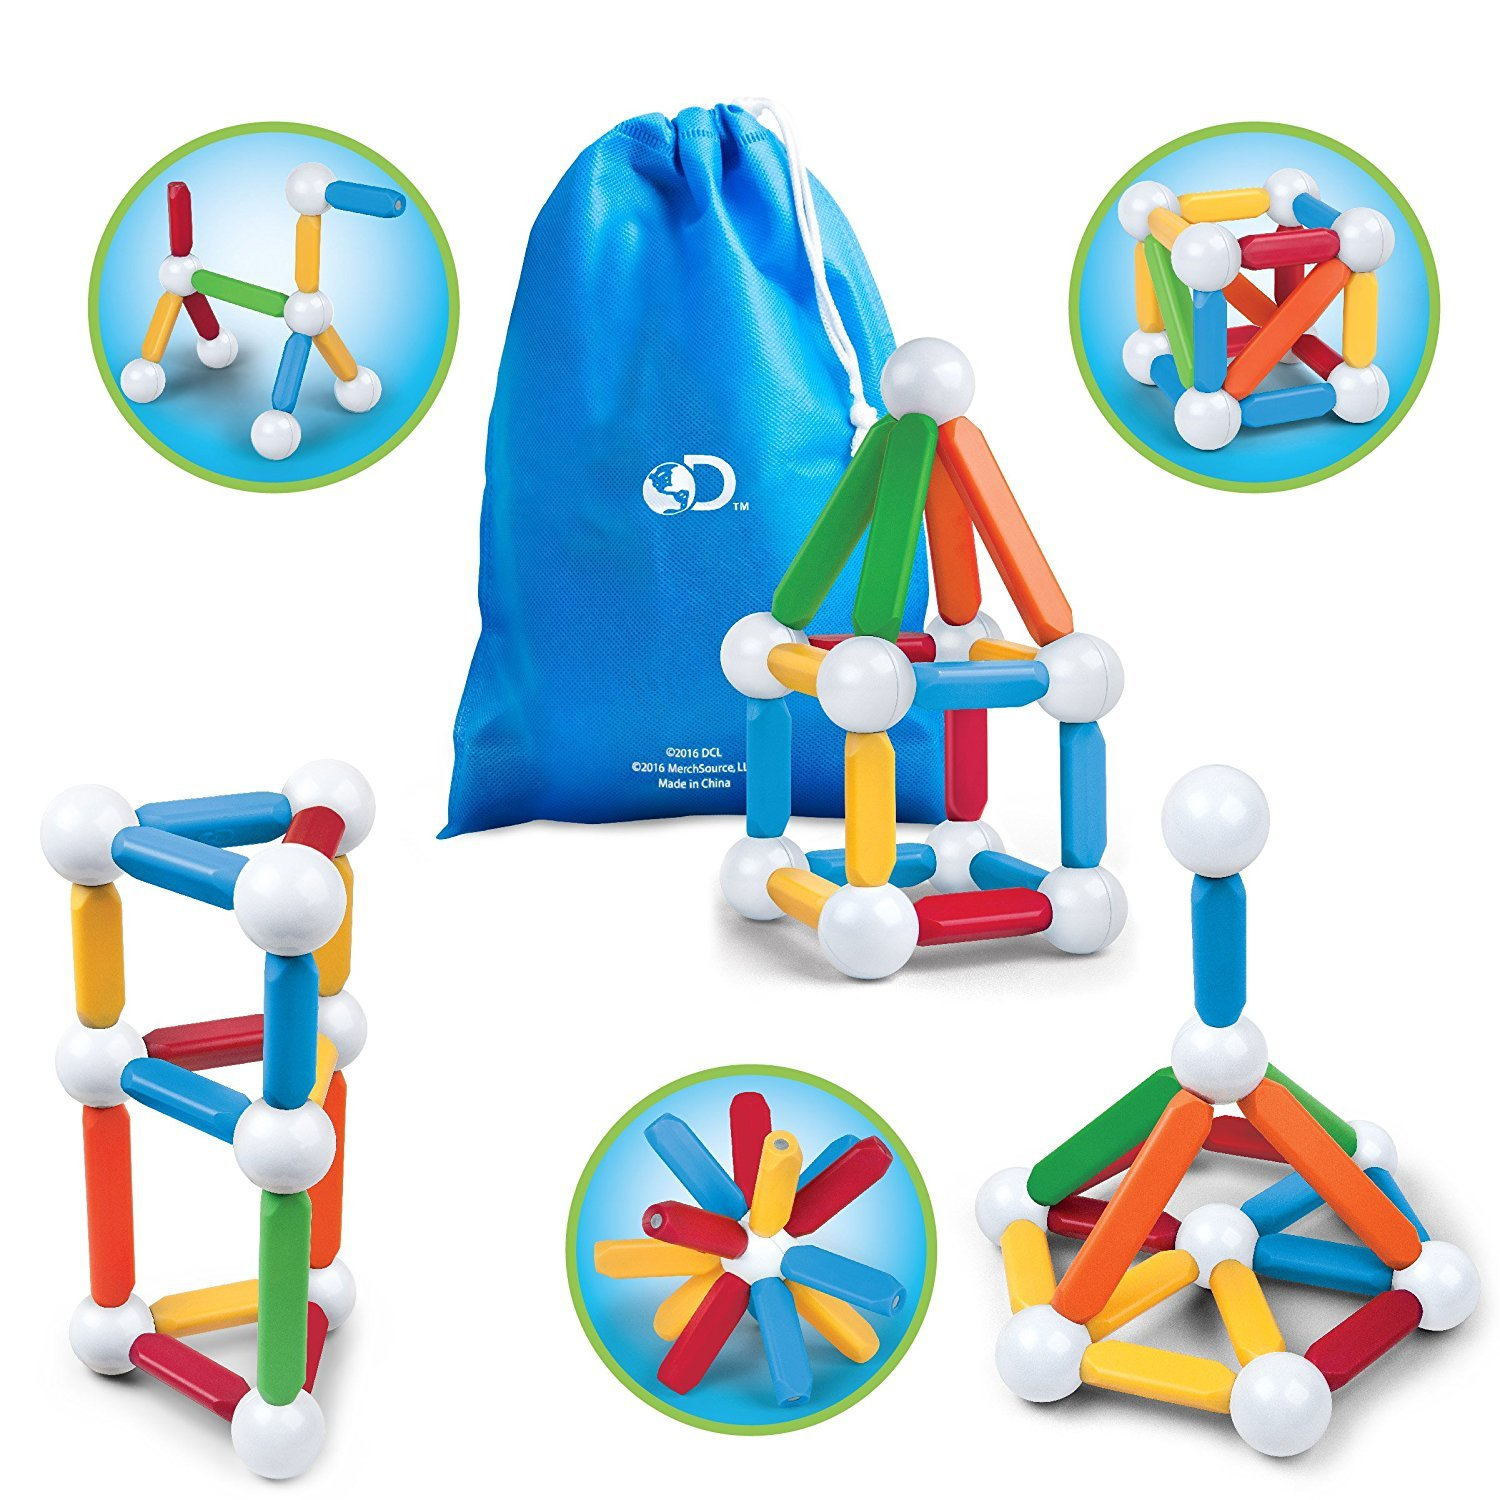 Discovery Kids 26 Piece Best Magnetic Blocks, Colorful Building Block Set  for Boys/Girls, Best 3D Educational Creativity, STEM Toys for Children –